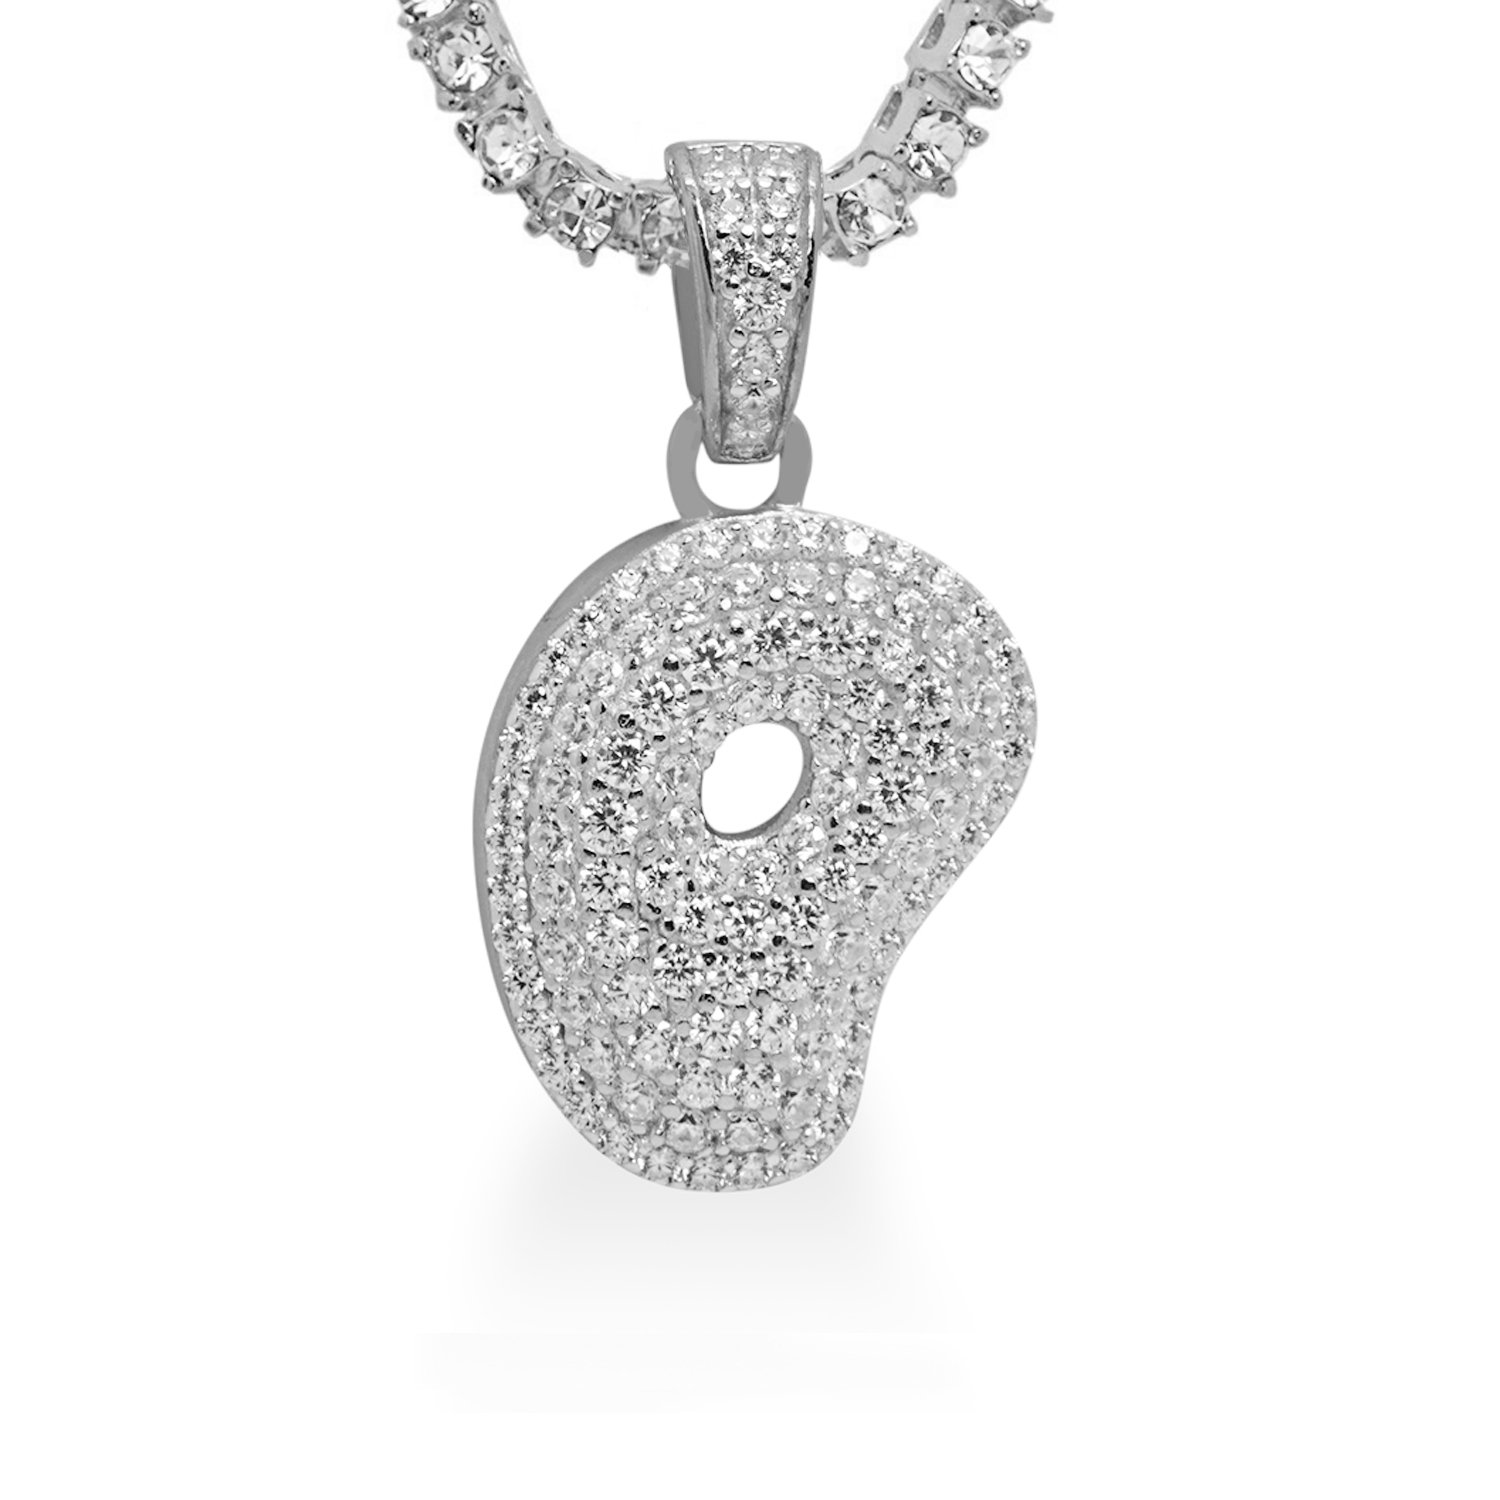 925 Sterling Silver White Gold-Tone Iced Out Hip Hop Swag Bling Bubble Letter P Pendant with 18 1 Row Chain